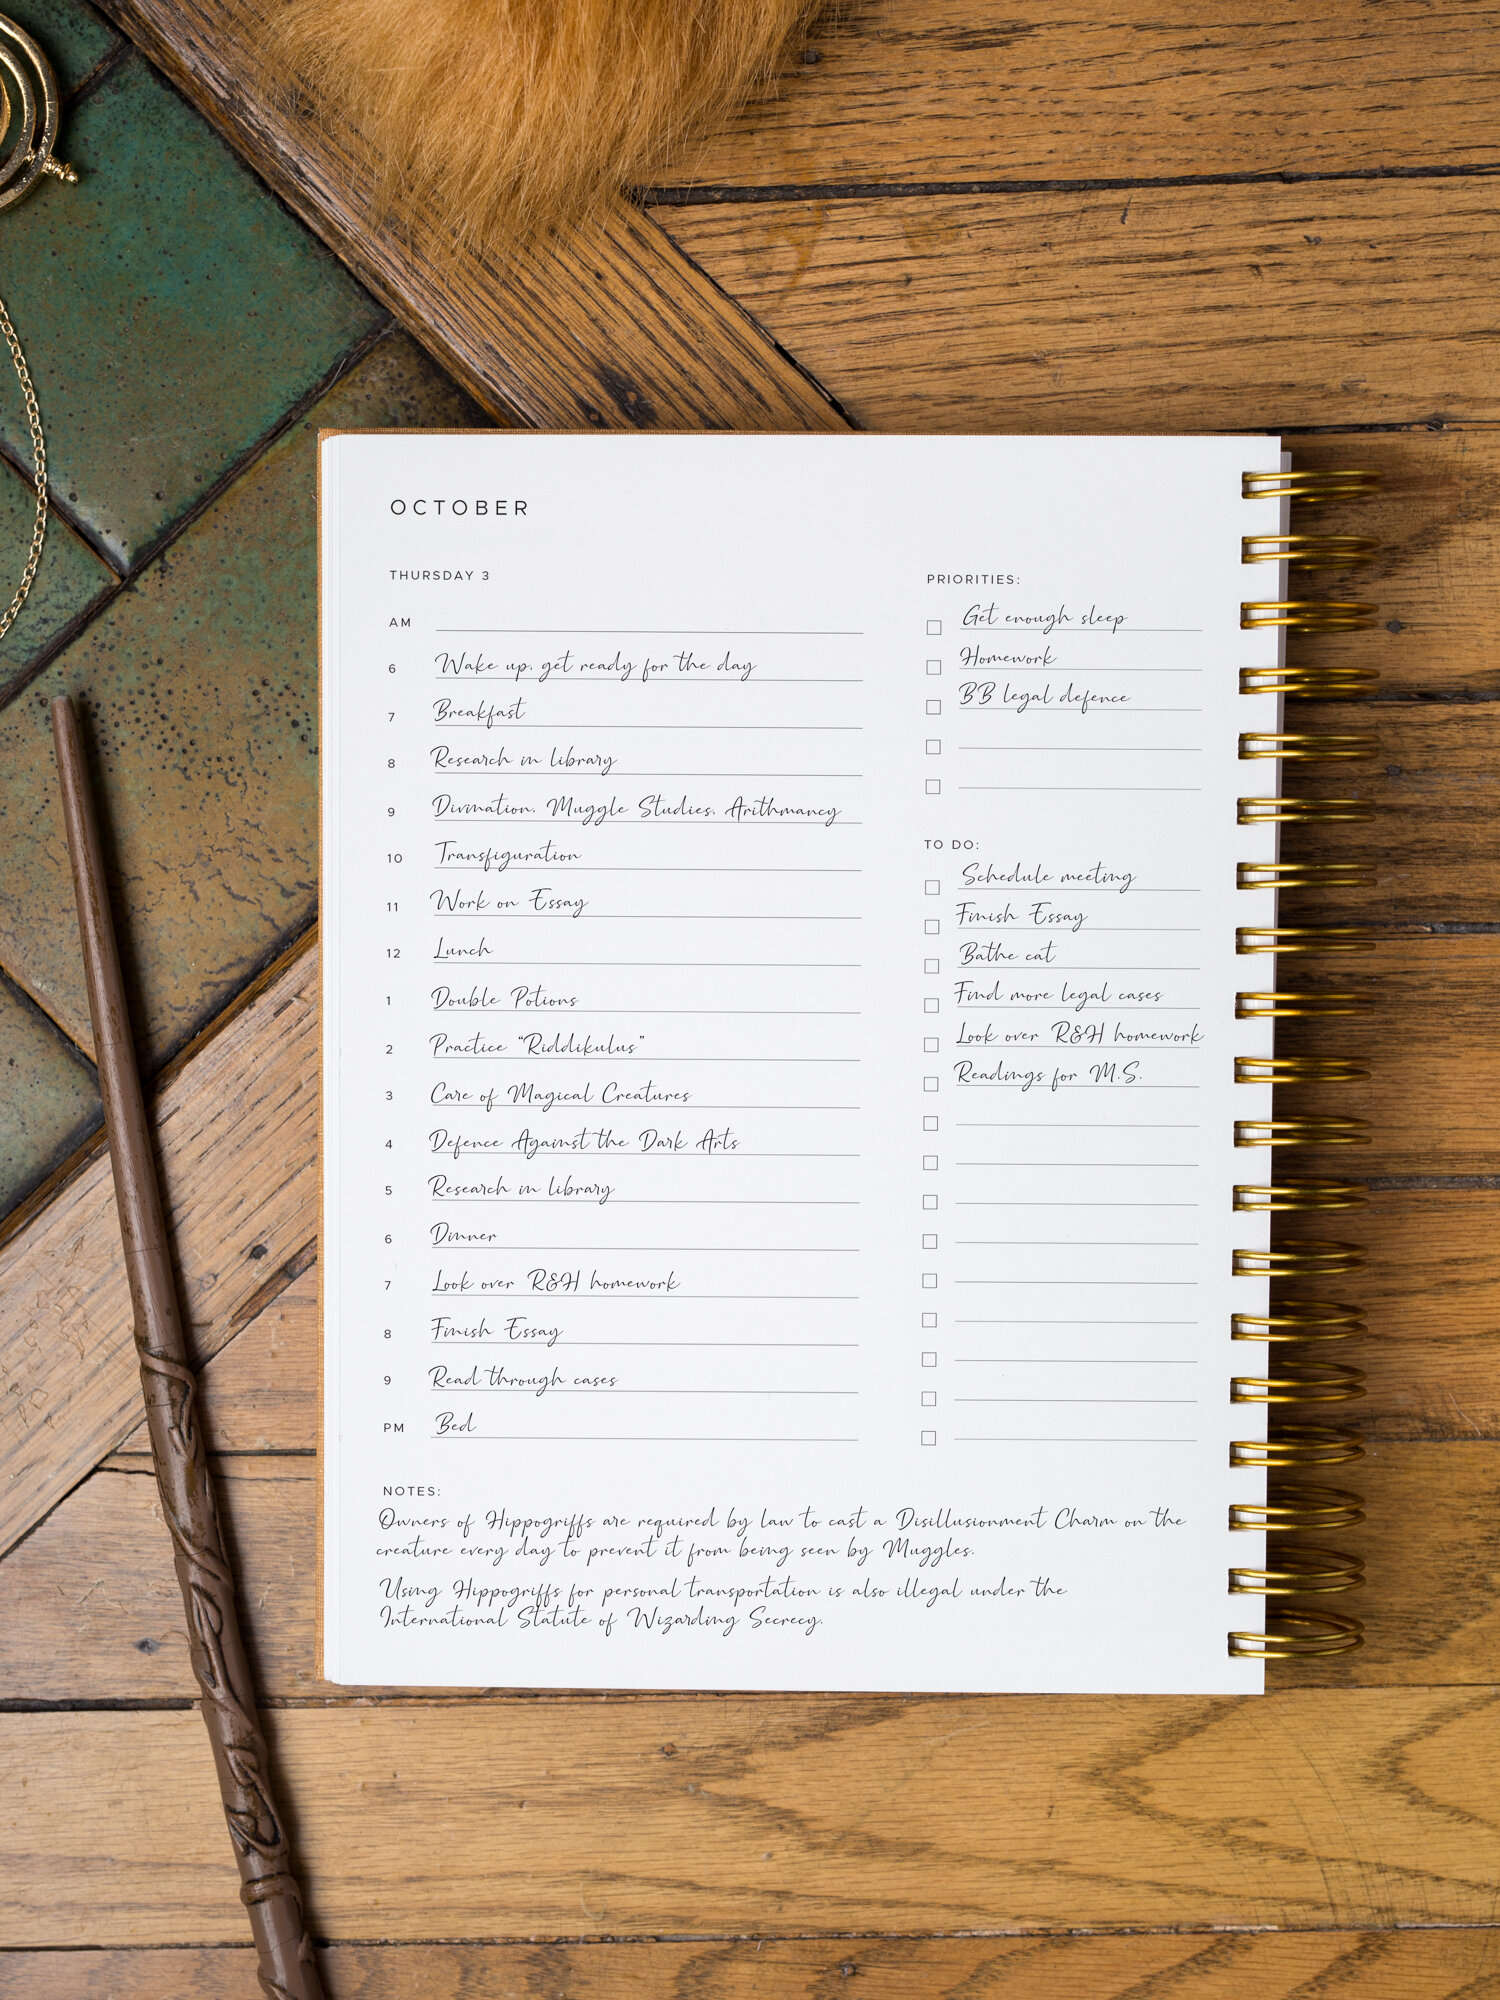 Mystery Planner character's schedule in their Golden Coil Planner